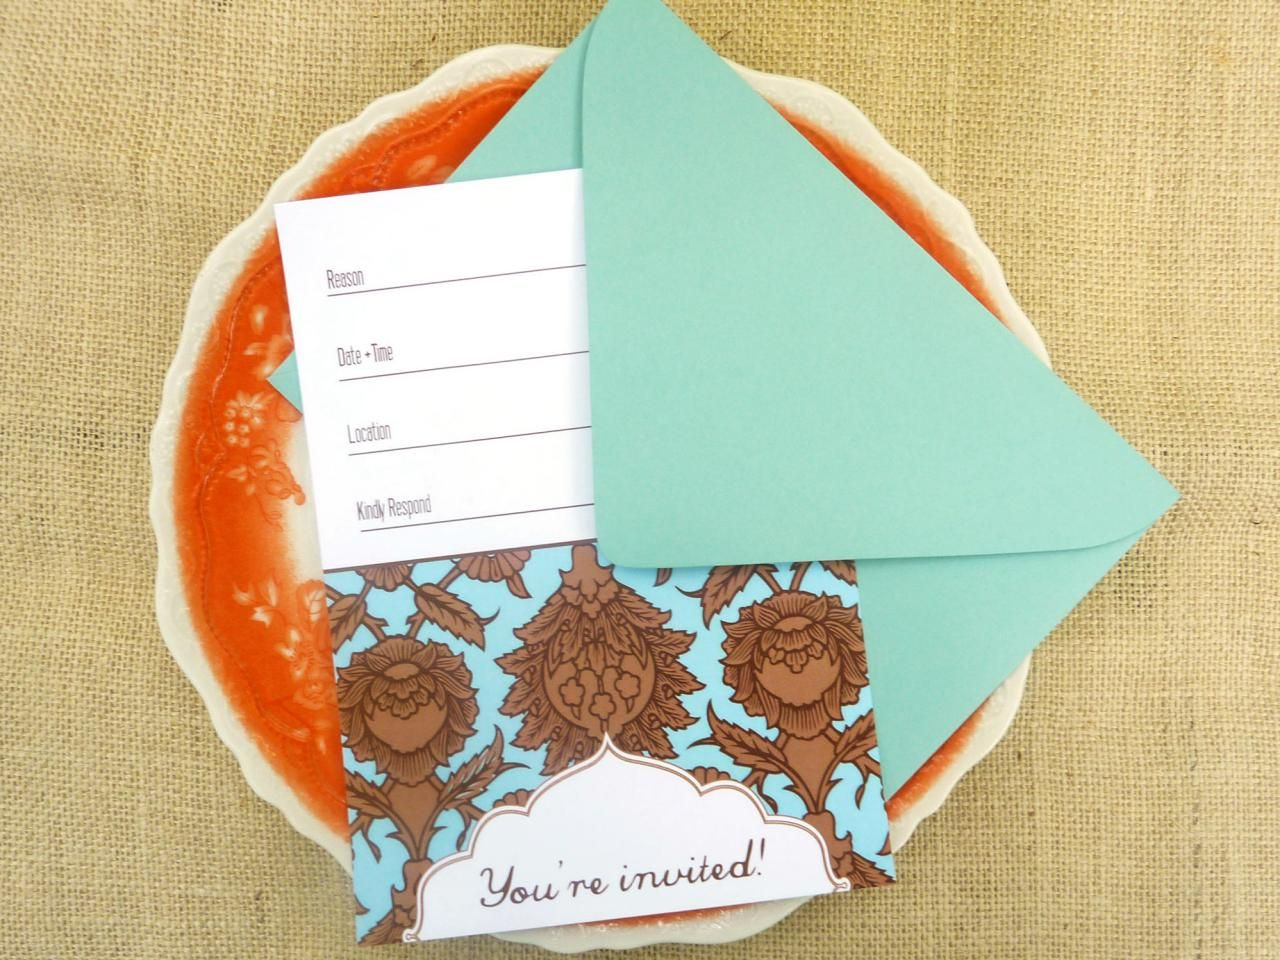 16 (Free!) Printable Party Invitations for Any Occasion is part of Free printable party invitations, Party invitations printable, Party printables free, Party printables, Party invitations, Invitations - HGTV com shares free printable party invitations for any occasion